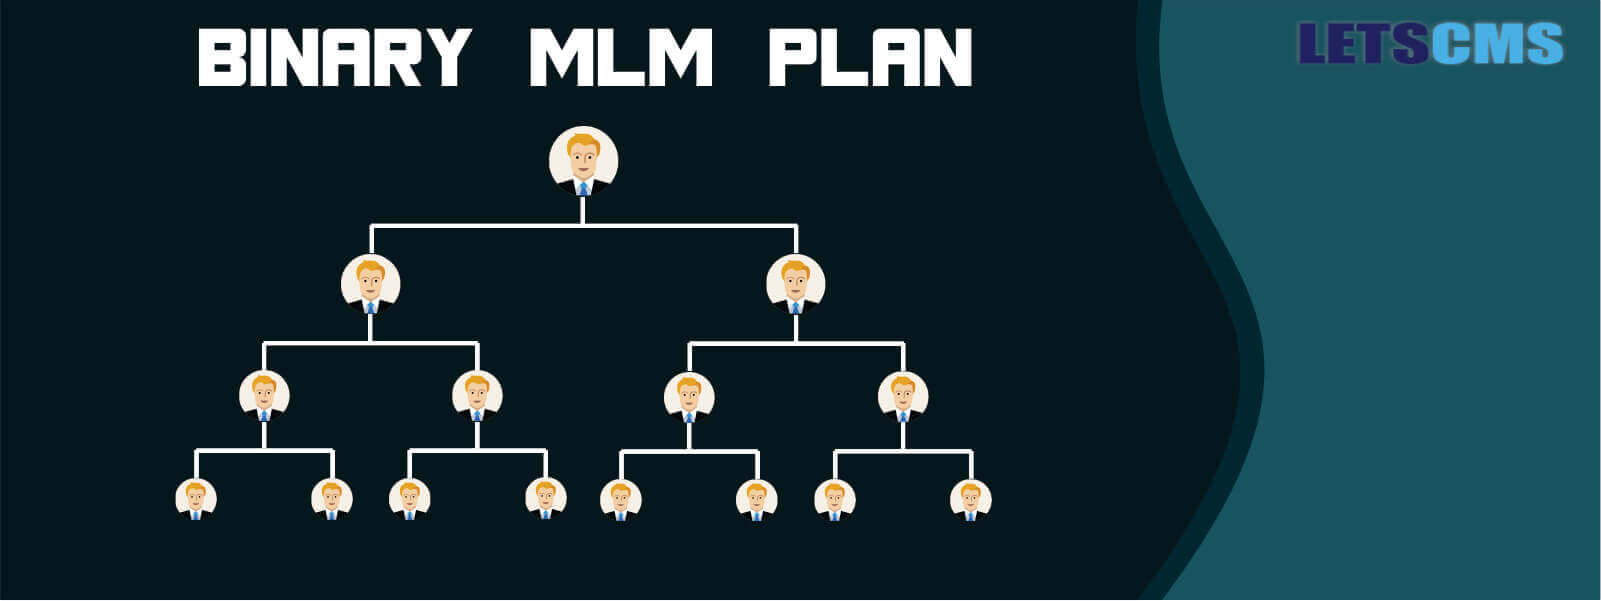 Unilevel MLM eCommerce Plan | WordPress Plugin Software | Unilevel MLM Plan | Unilevel MLM Software | Unilevel Compensation Plan | Unilevel MLM calculator | Sponsor Bonus | Fast Start Bonus | Level Commission | Rank Advancement Bonus | Royalty Bonus